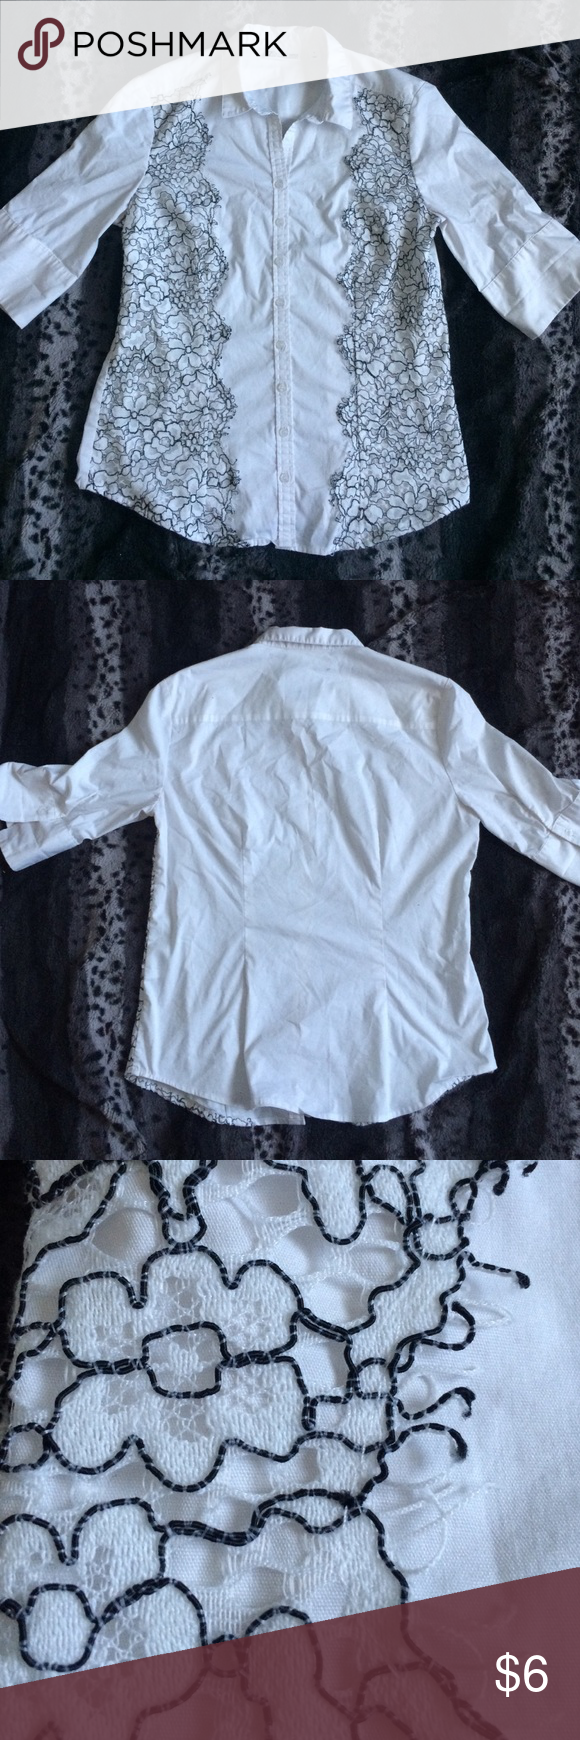 White Blouse Black lace along either side of the front. No stains. New York & Company Tops Blouses